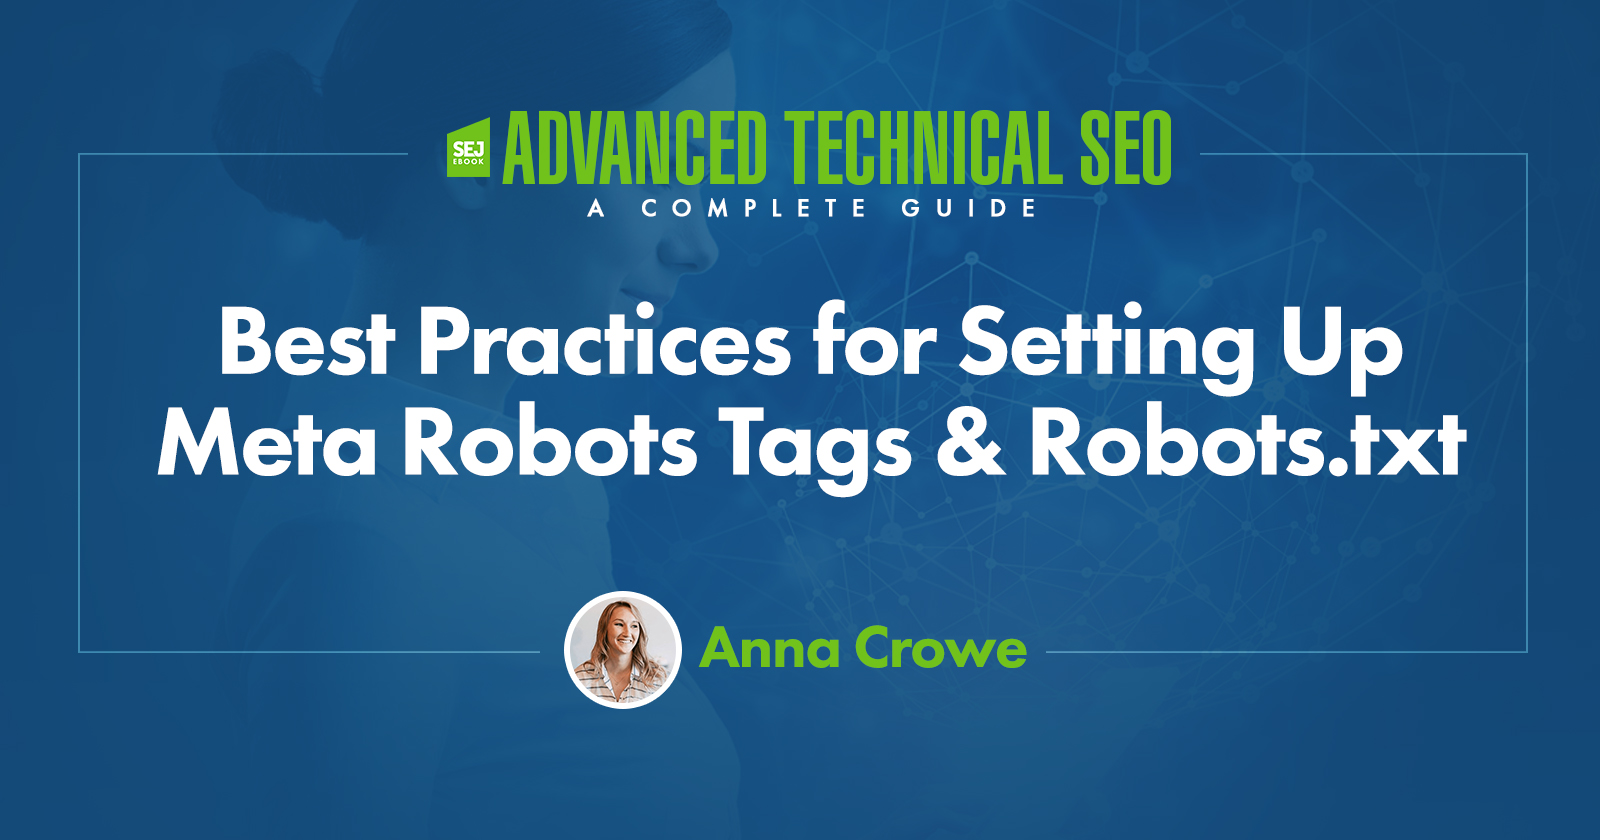 best practices for setting up meta robots tags robots.txt 5e397a5392f8e